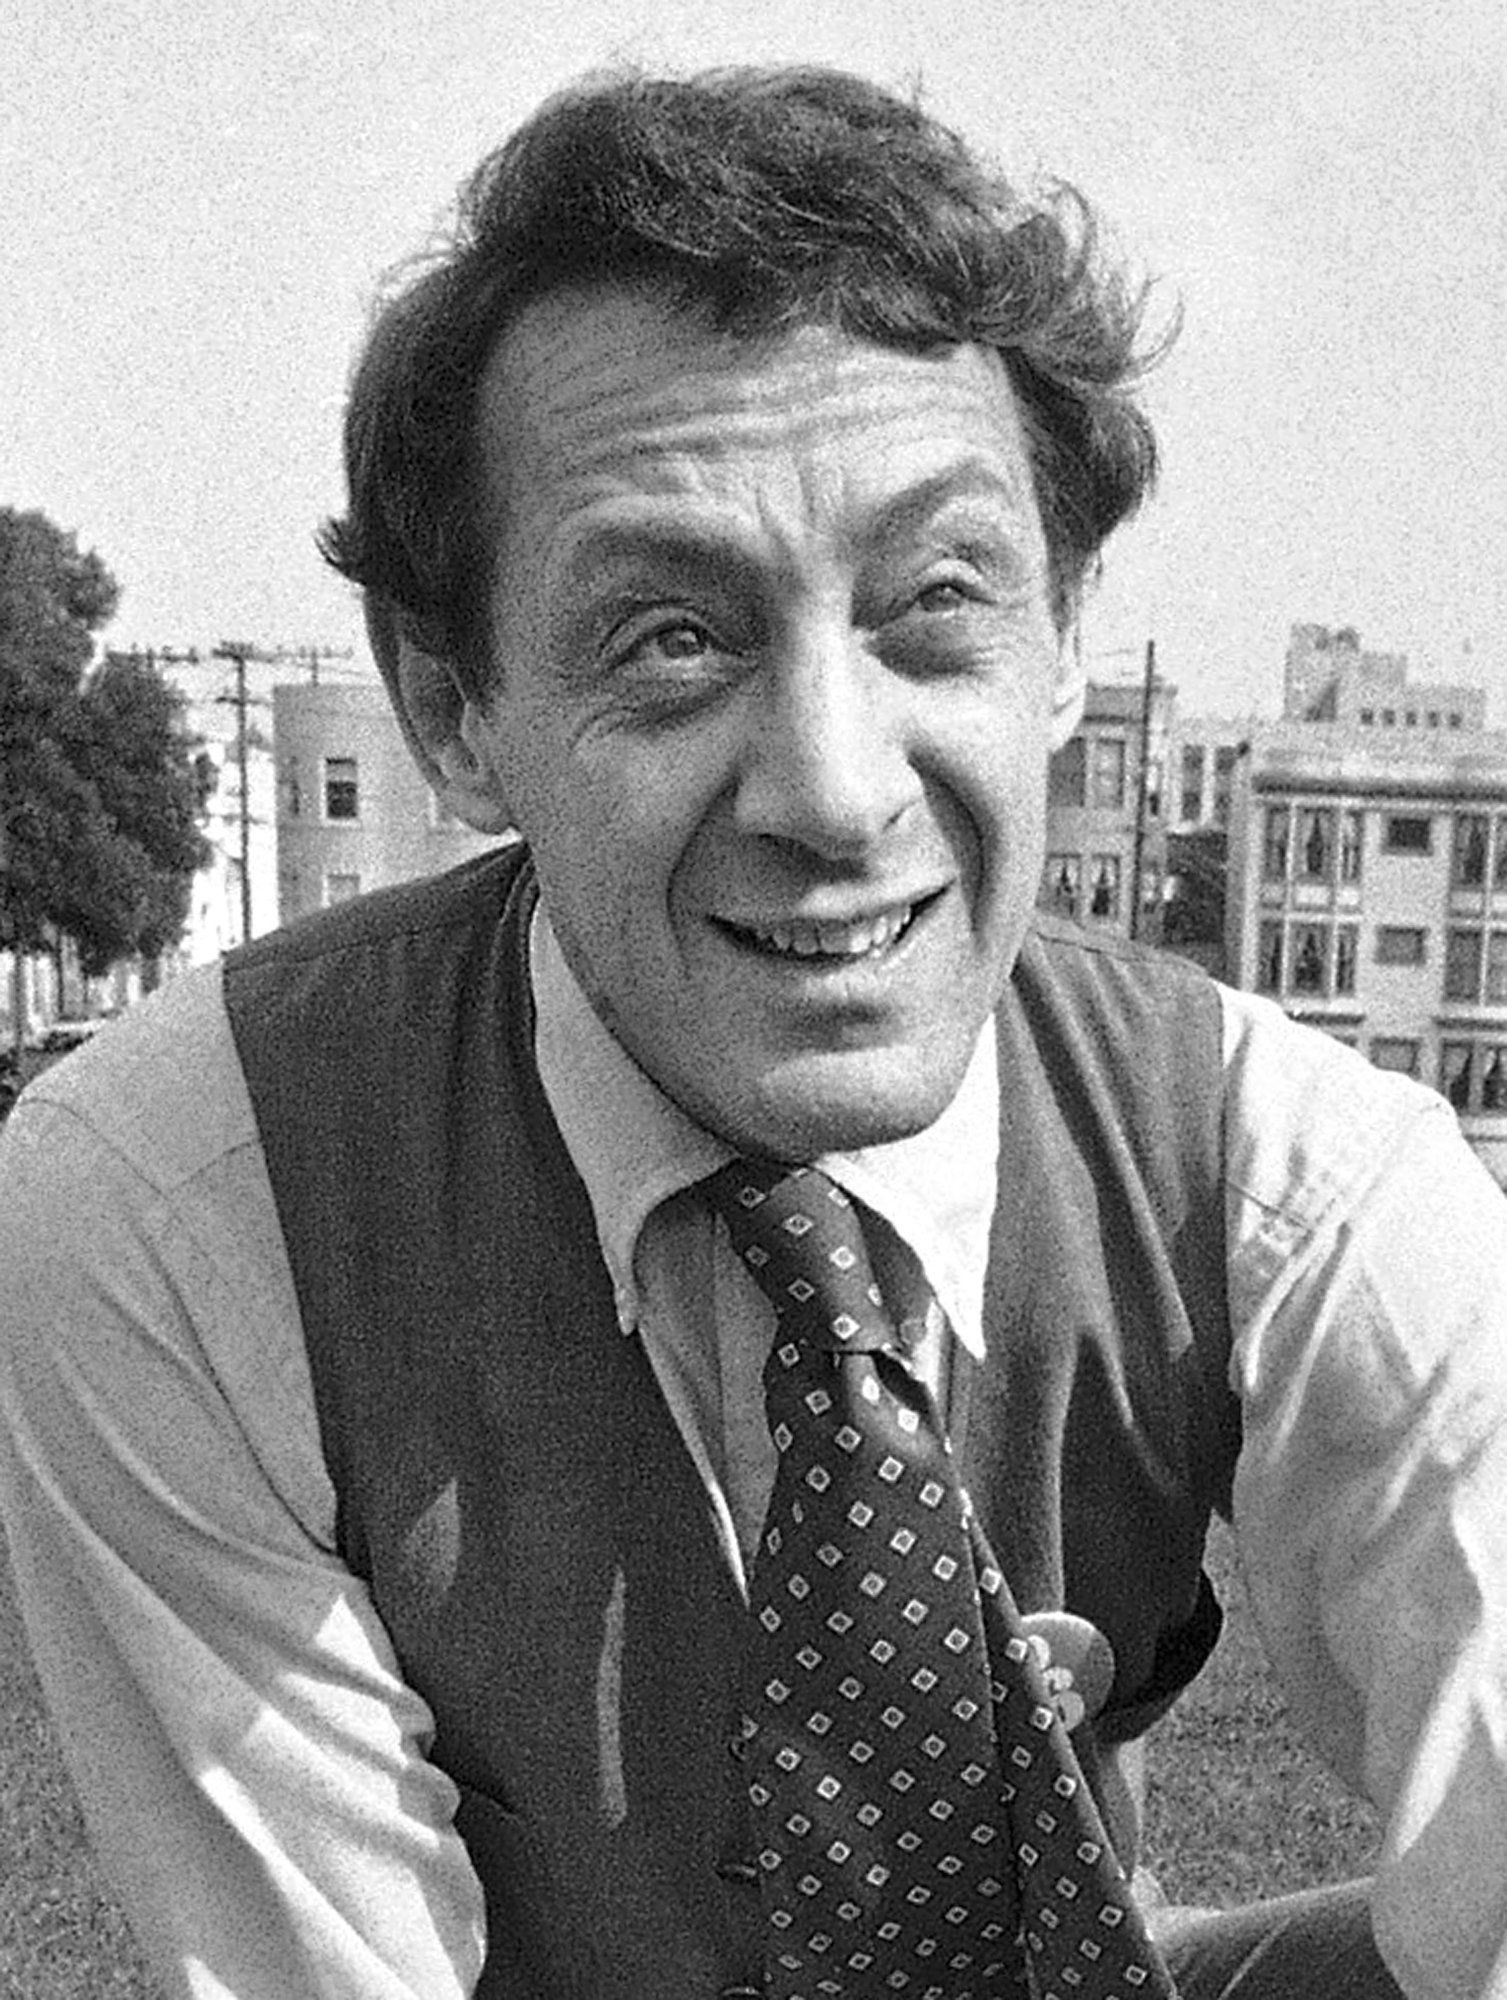 FILE - In this Oct. 20, 1978 file photo, Supervisor Harvey Milk speaks to the media about the city's new anti-litter law in San Francisco. Navy Secretary Ray Mabus announced in July 2016 that he would name a fleet oiler ship after the late gay rights leader, Milk. Some have challenged names that Mabus has picked for naval ships. (AP Photo/James Palmer, File)